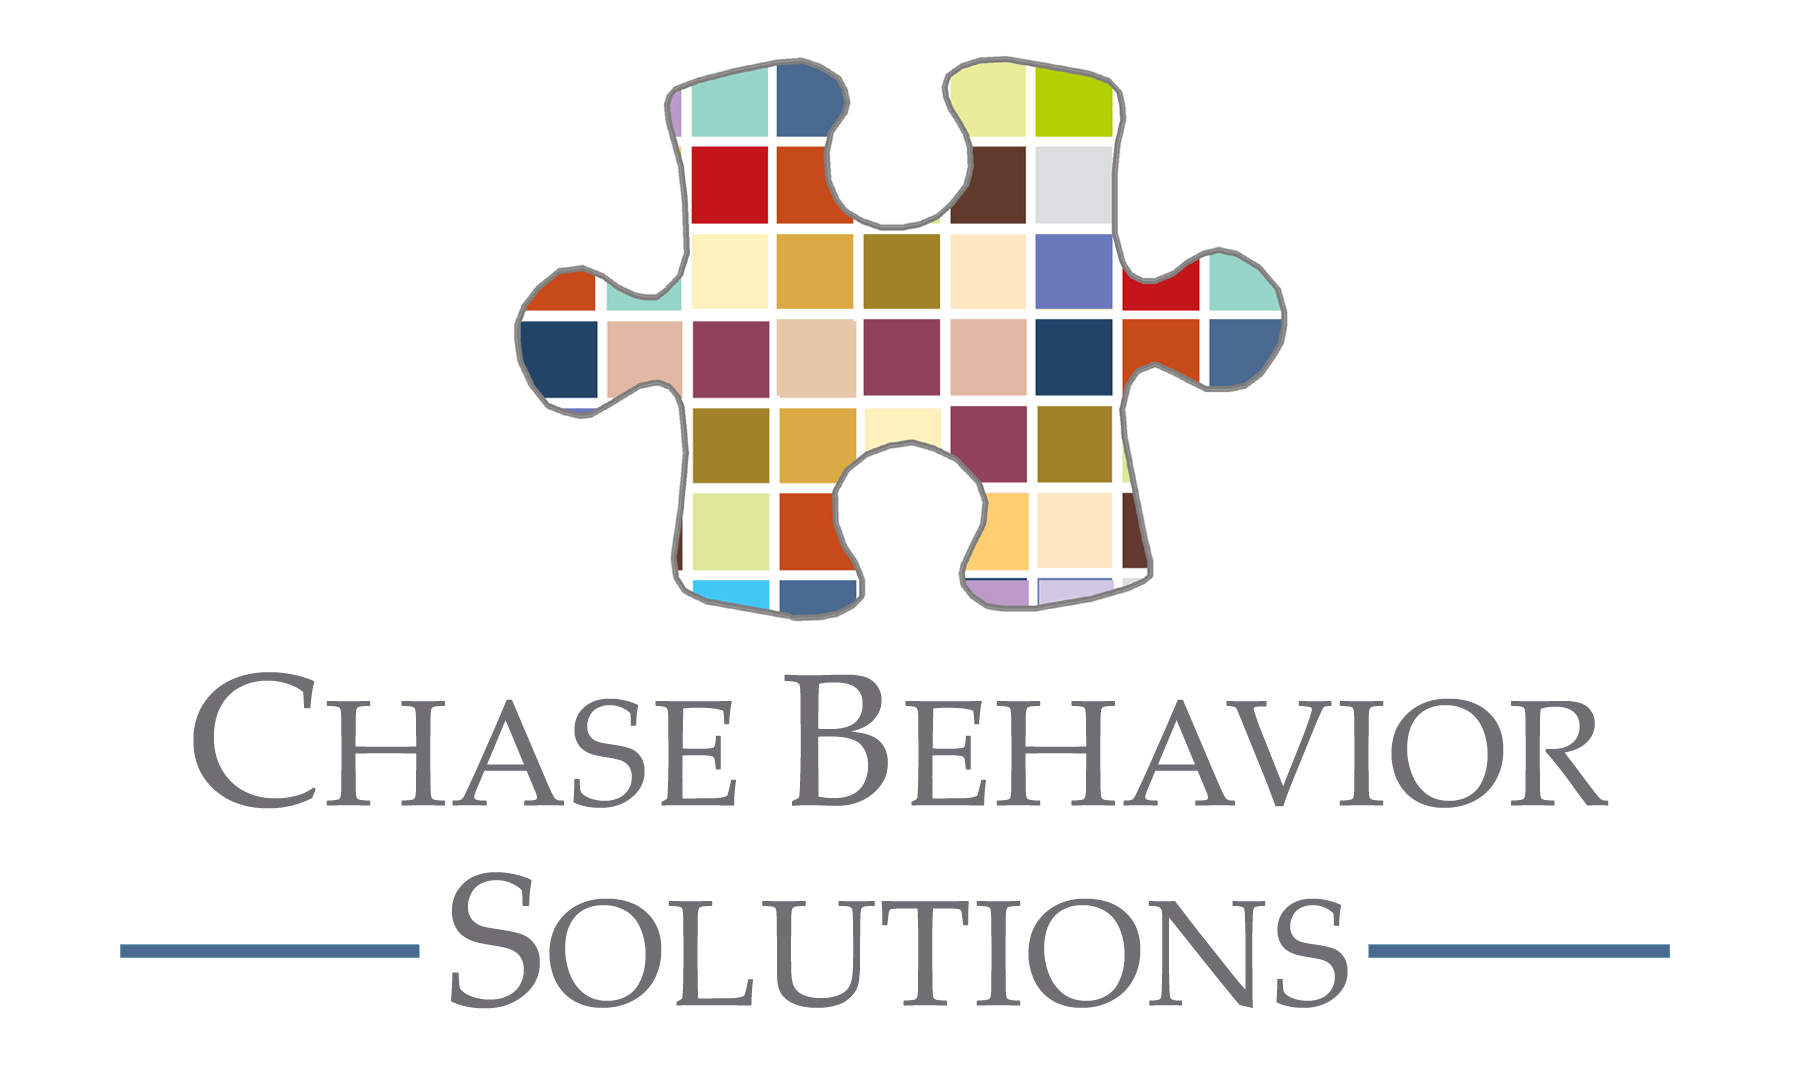 Chase Behavior Solutions